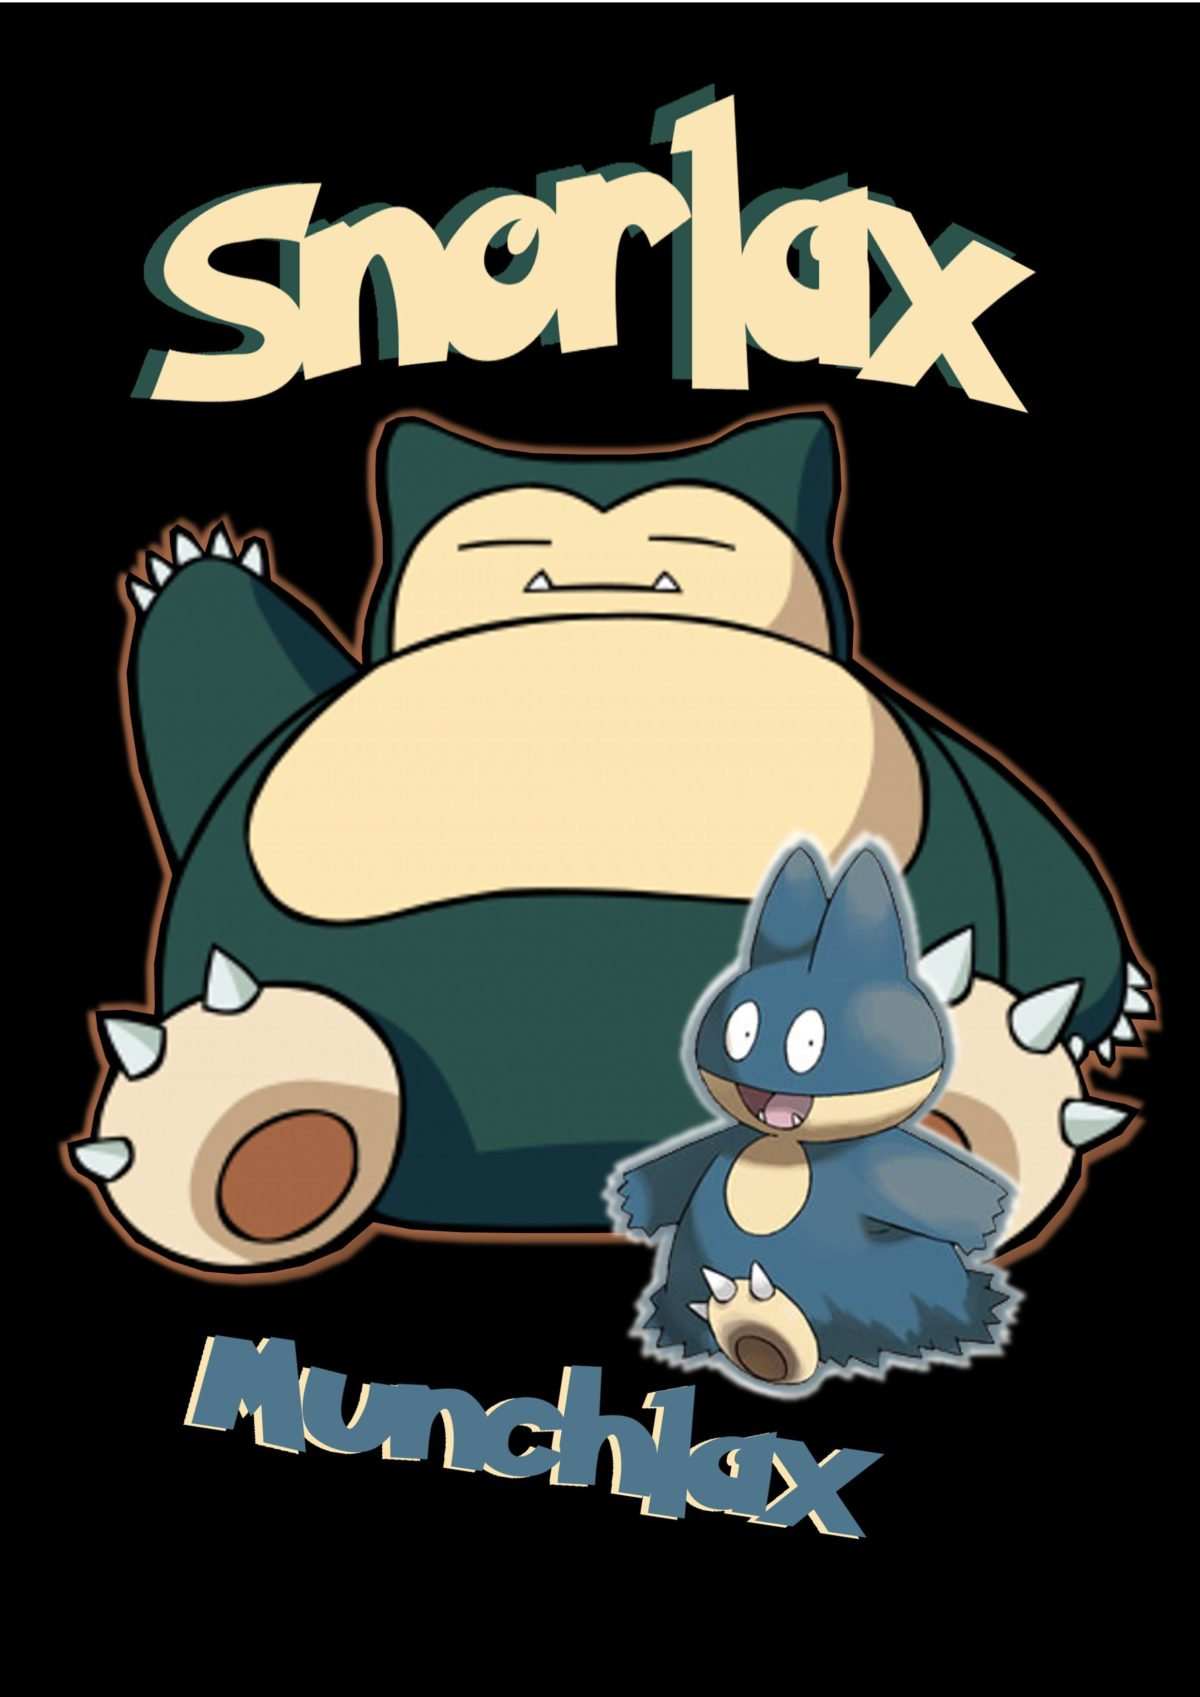 Snorlax and Munchlax (T-Shirt idea) by NordicBerry on DeviantArt